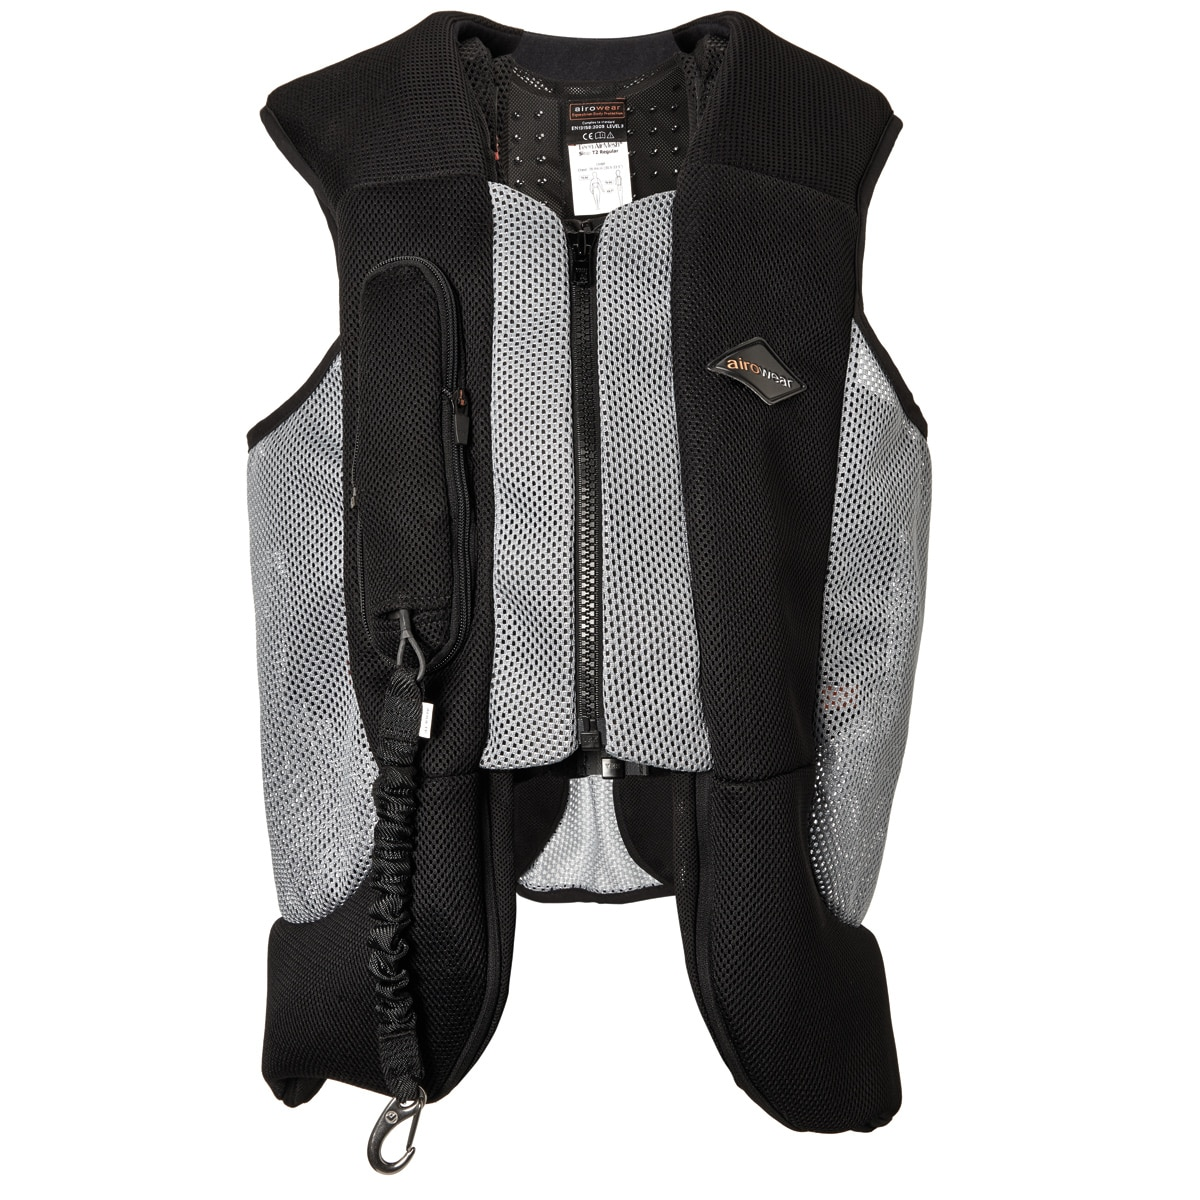 Airowear AYRPS AirMesh2 & AirShell Combo Safety Vest